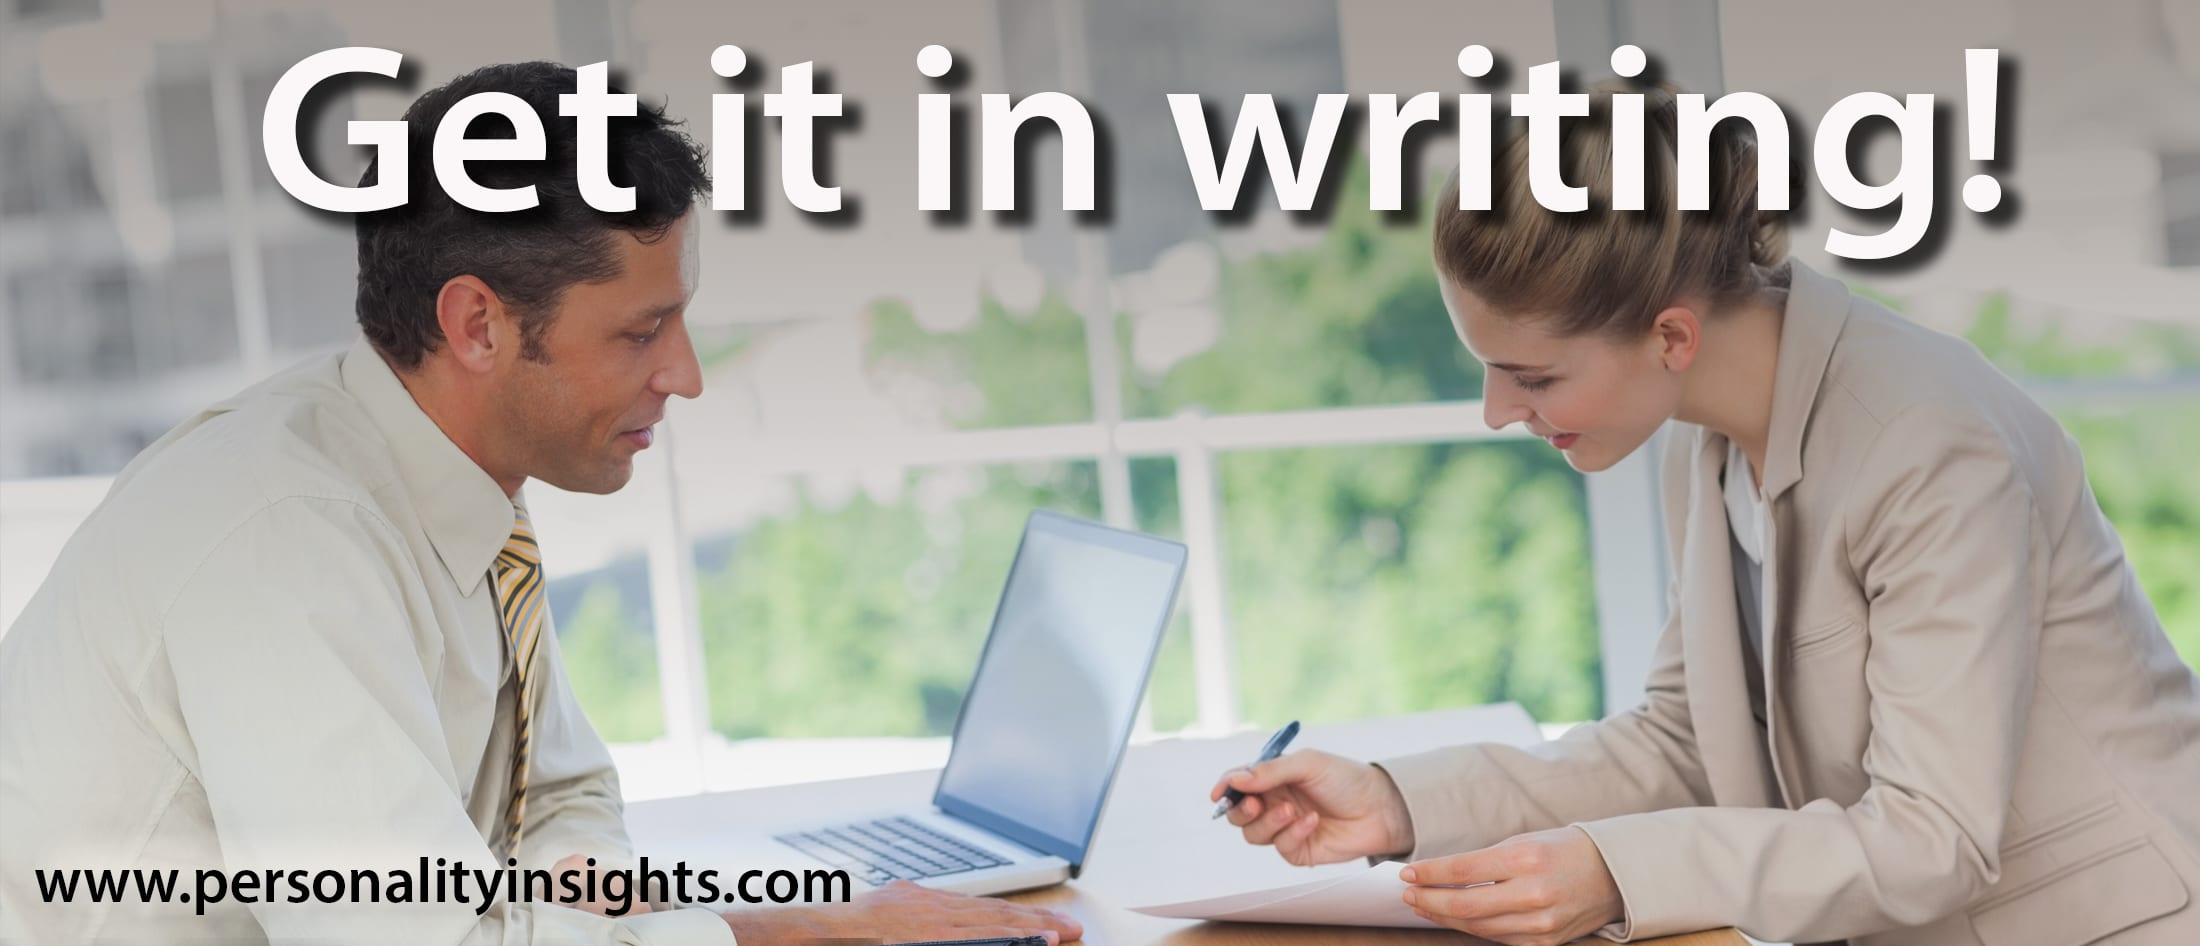 Tip:  Get it in writing!